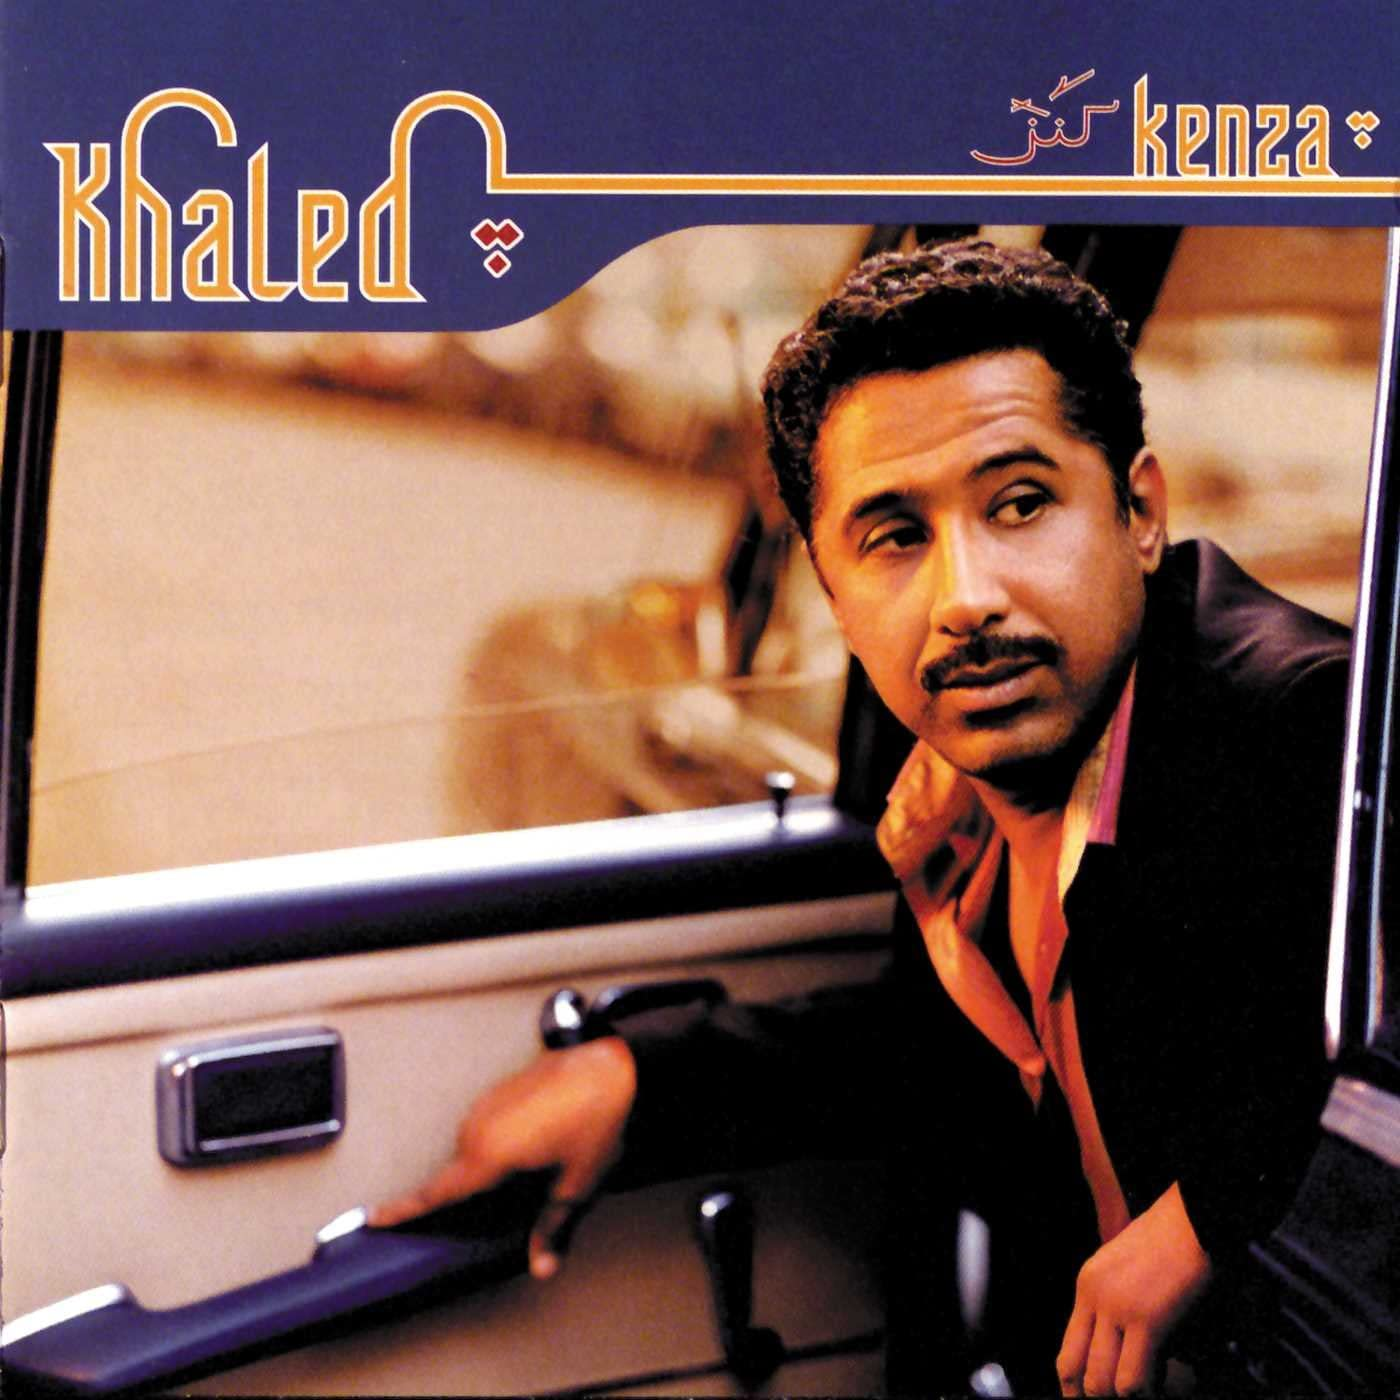 CHEB KHALED - KENZA (CD)